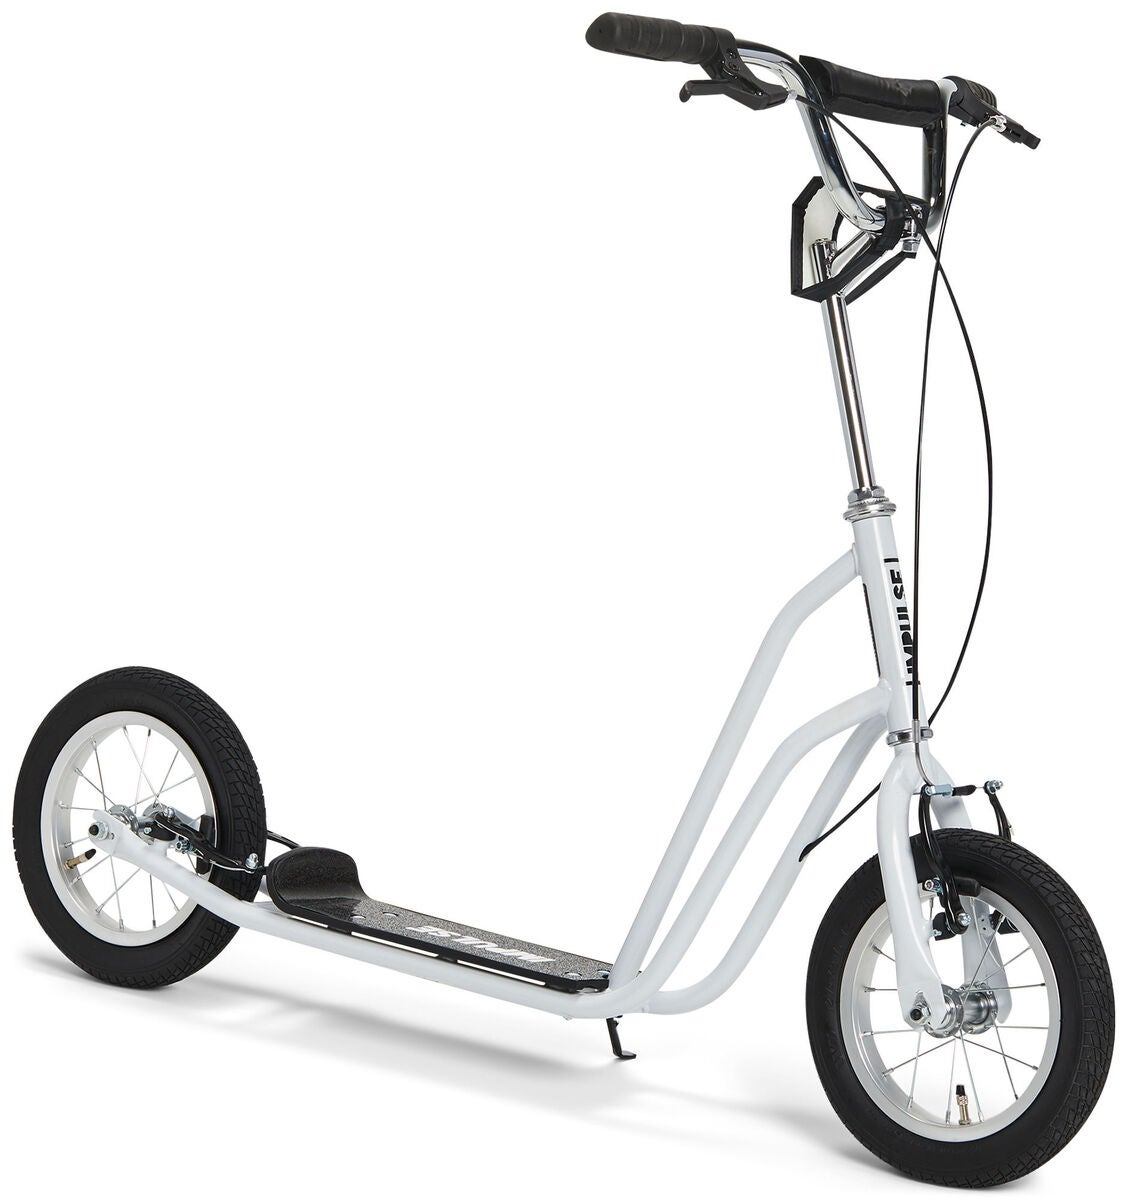 Impulse BMX Scooter 12 Tum, Vit